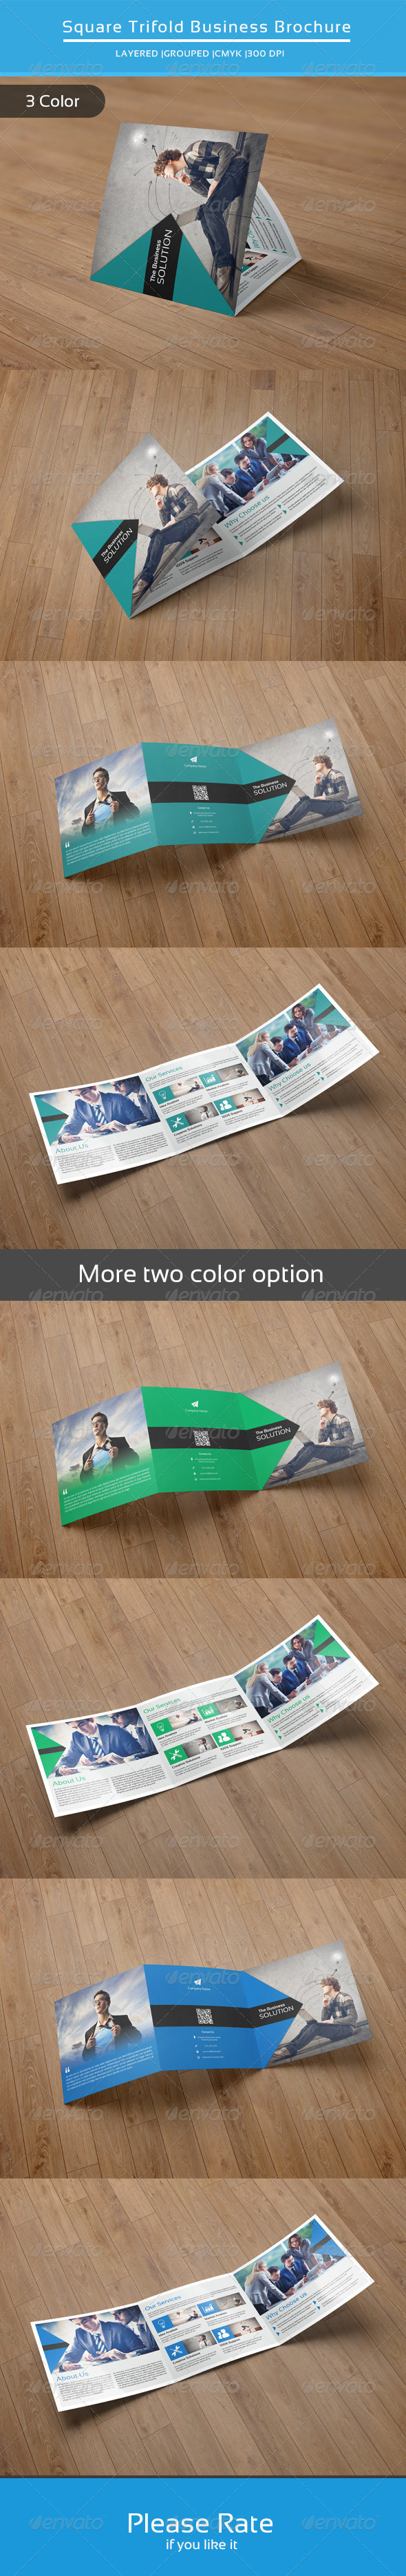 Square Trifold Business Brochure-V22